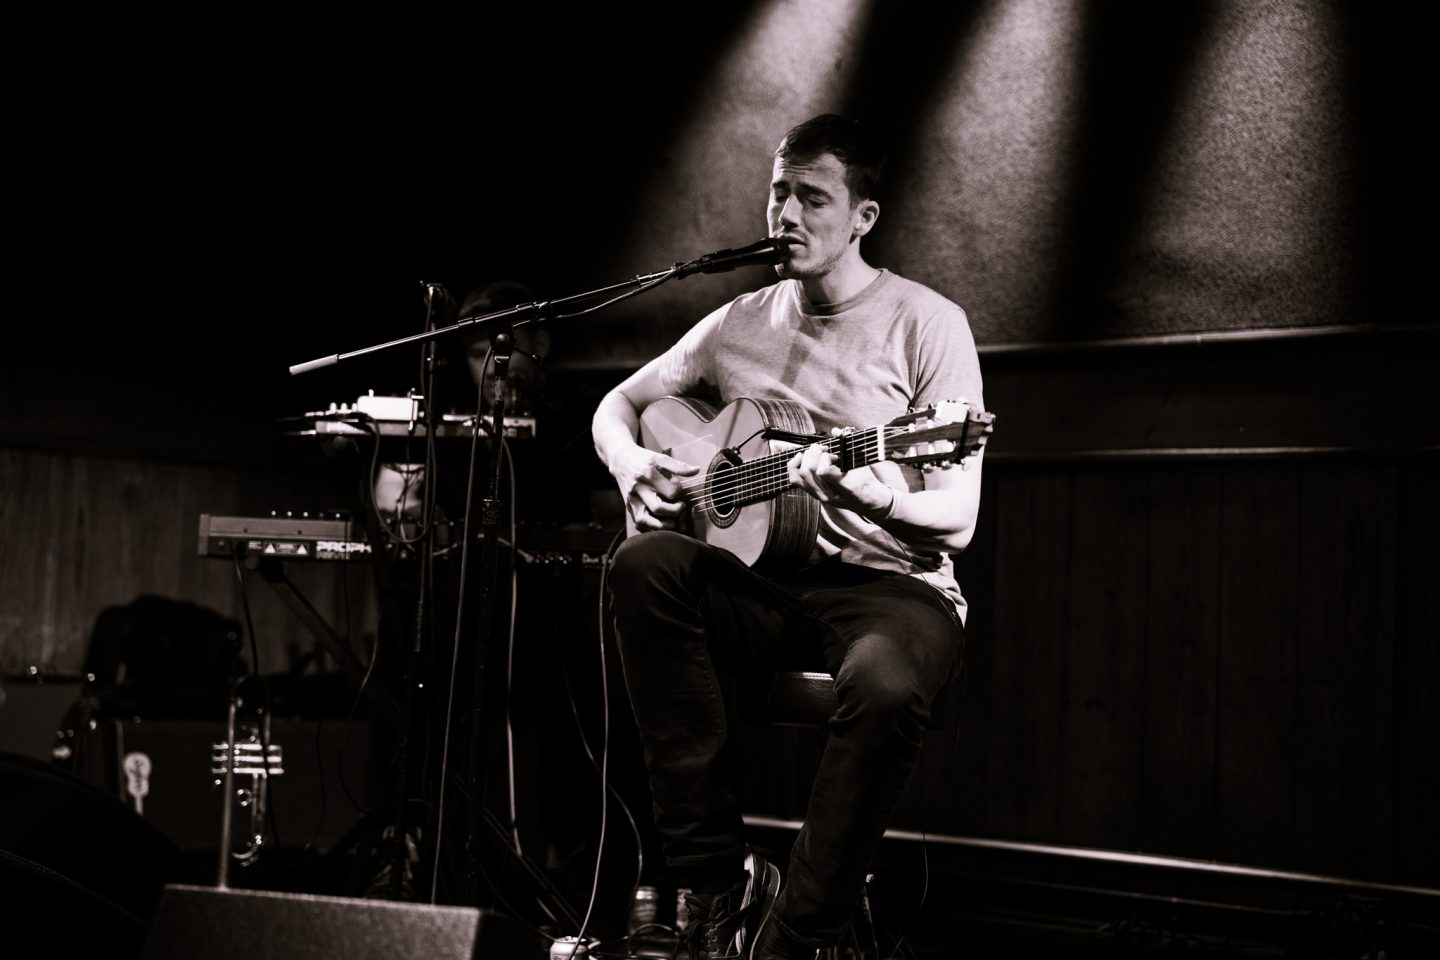 Charlie Cunningham at Schubas by Liina Raud Photography